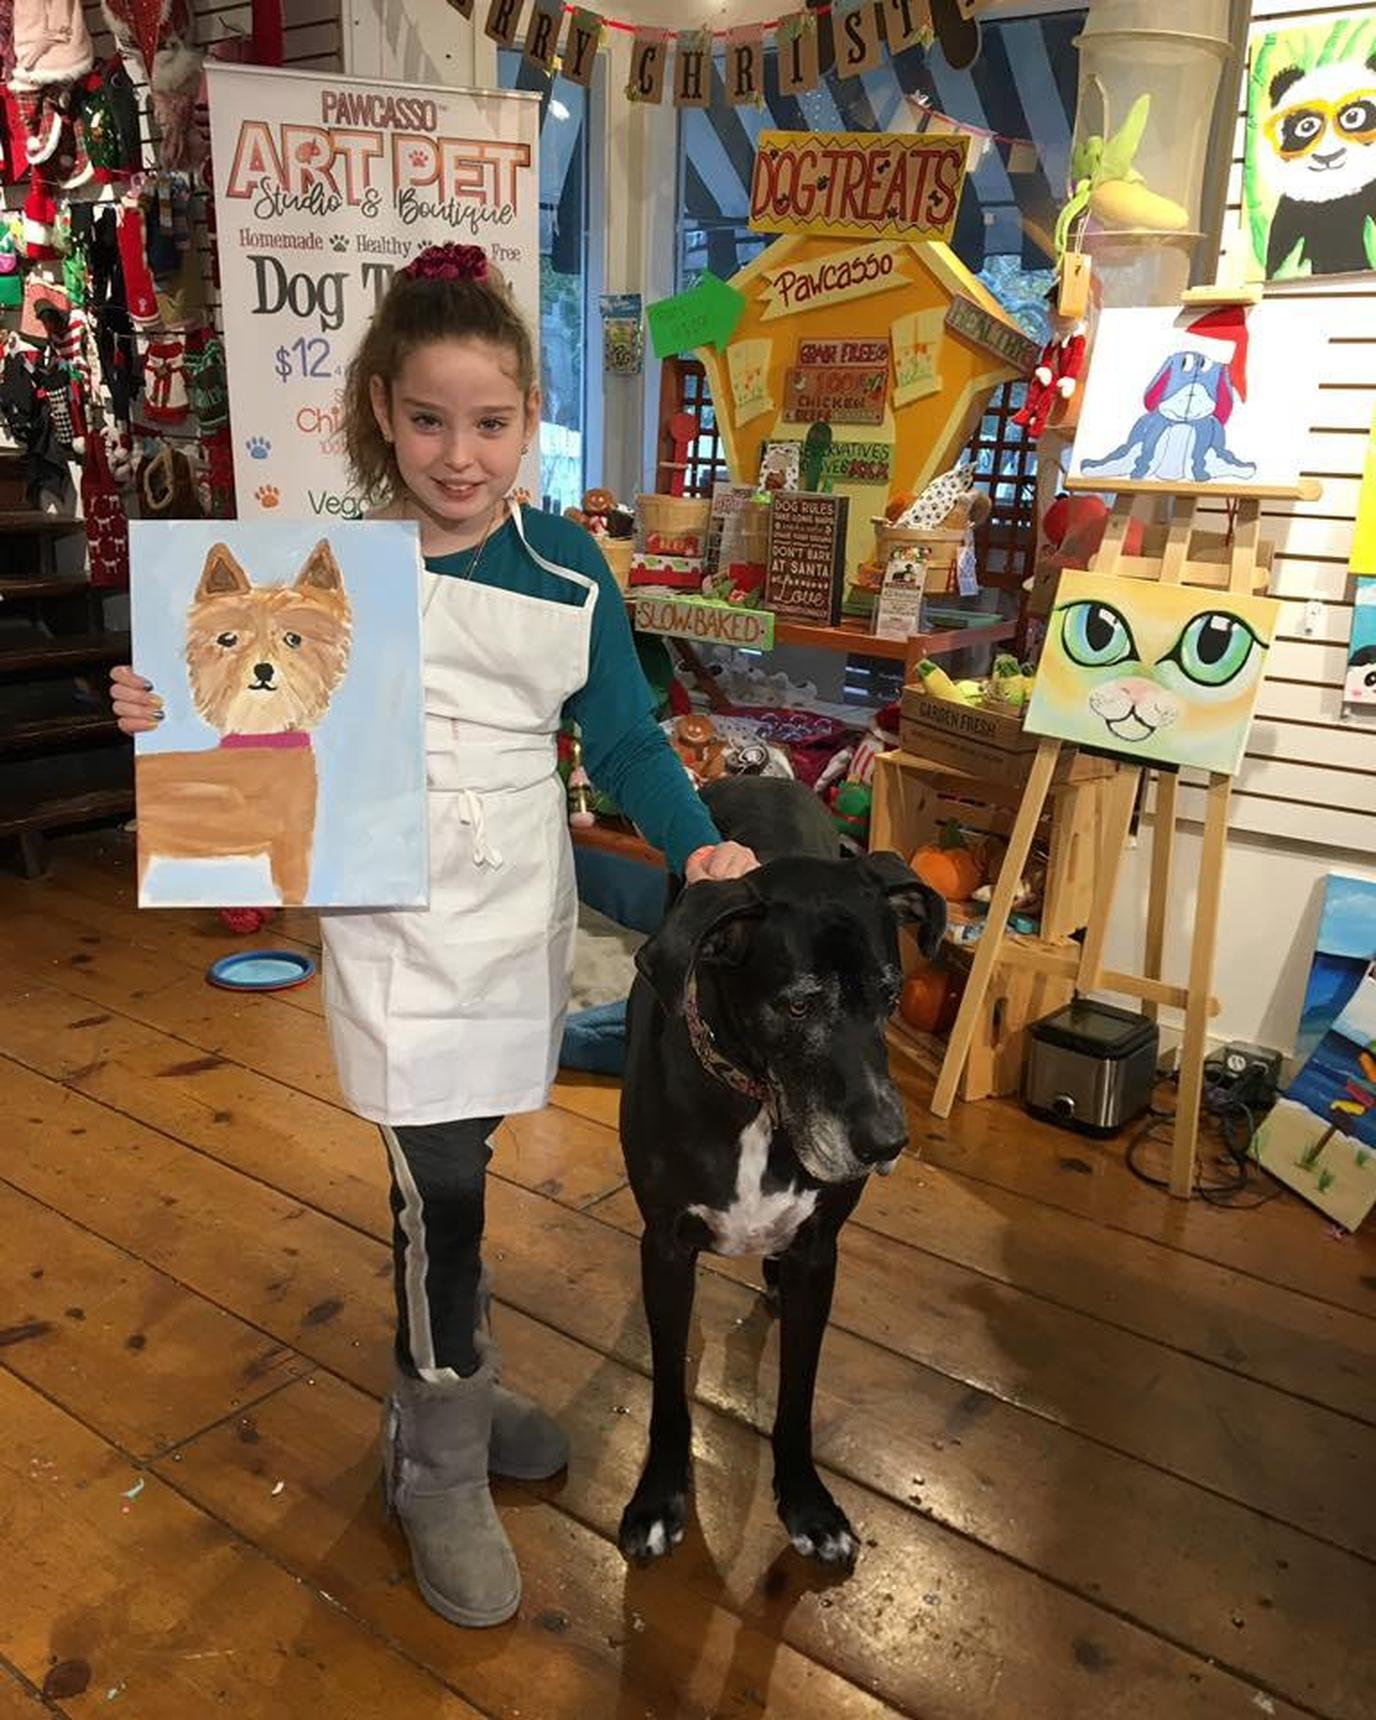 Pawcasso Art Studio and Pet Boutique in Westhampton Beach, NY invites people to paint with their pet